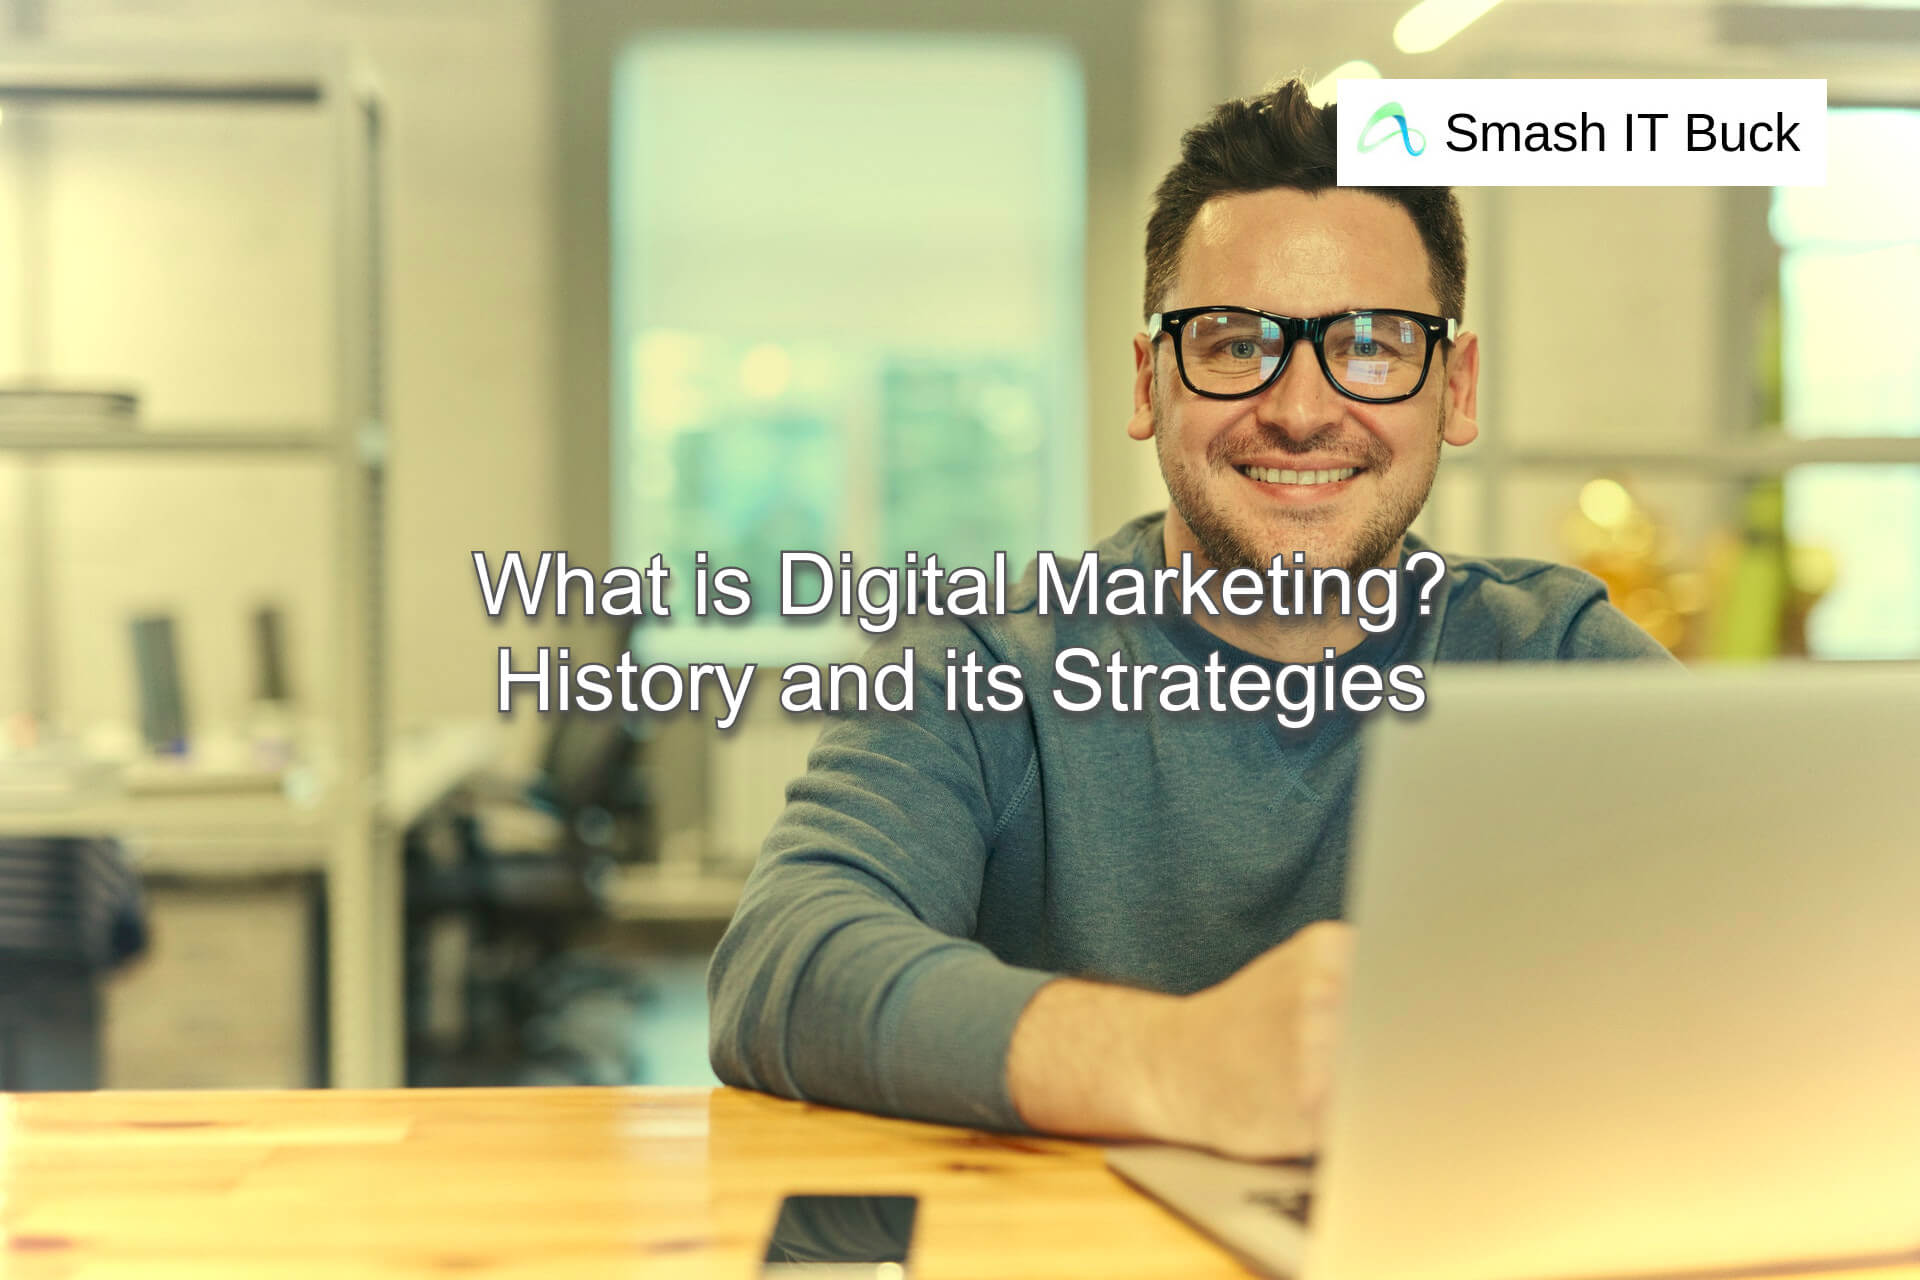 What is Digital Marketing? History and Strategies